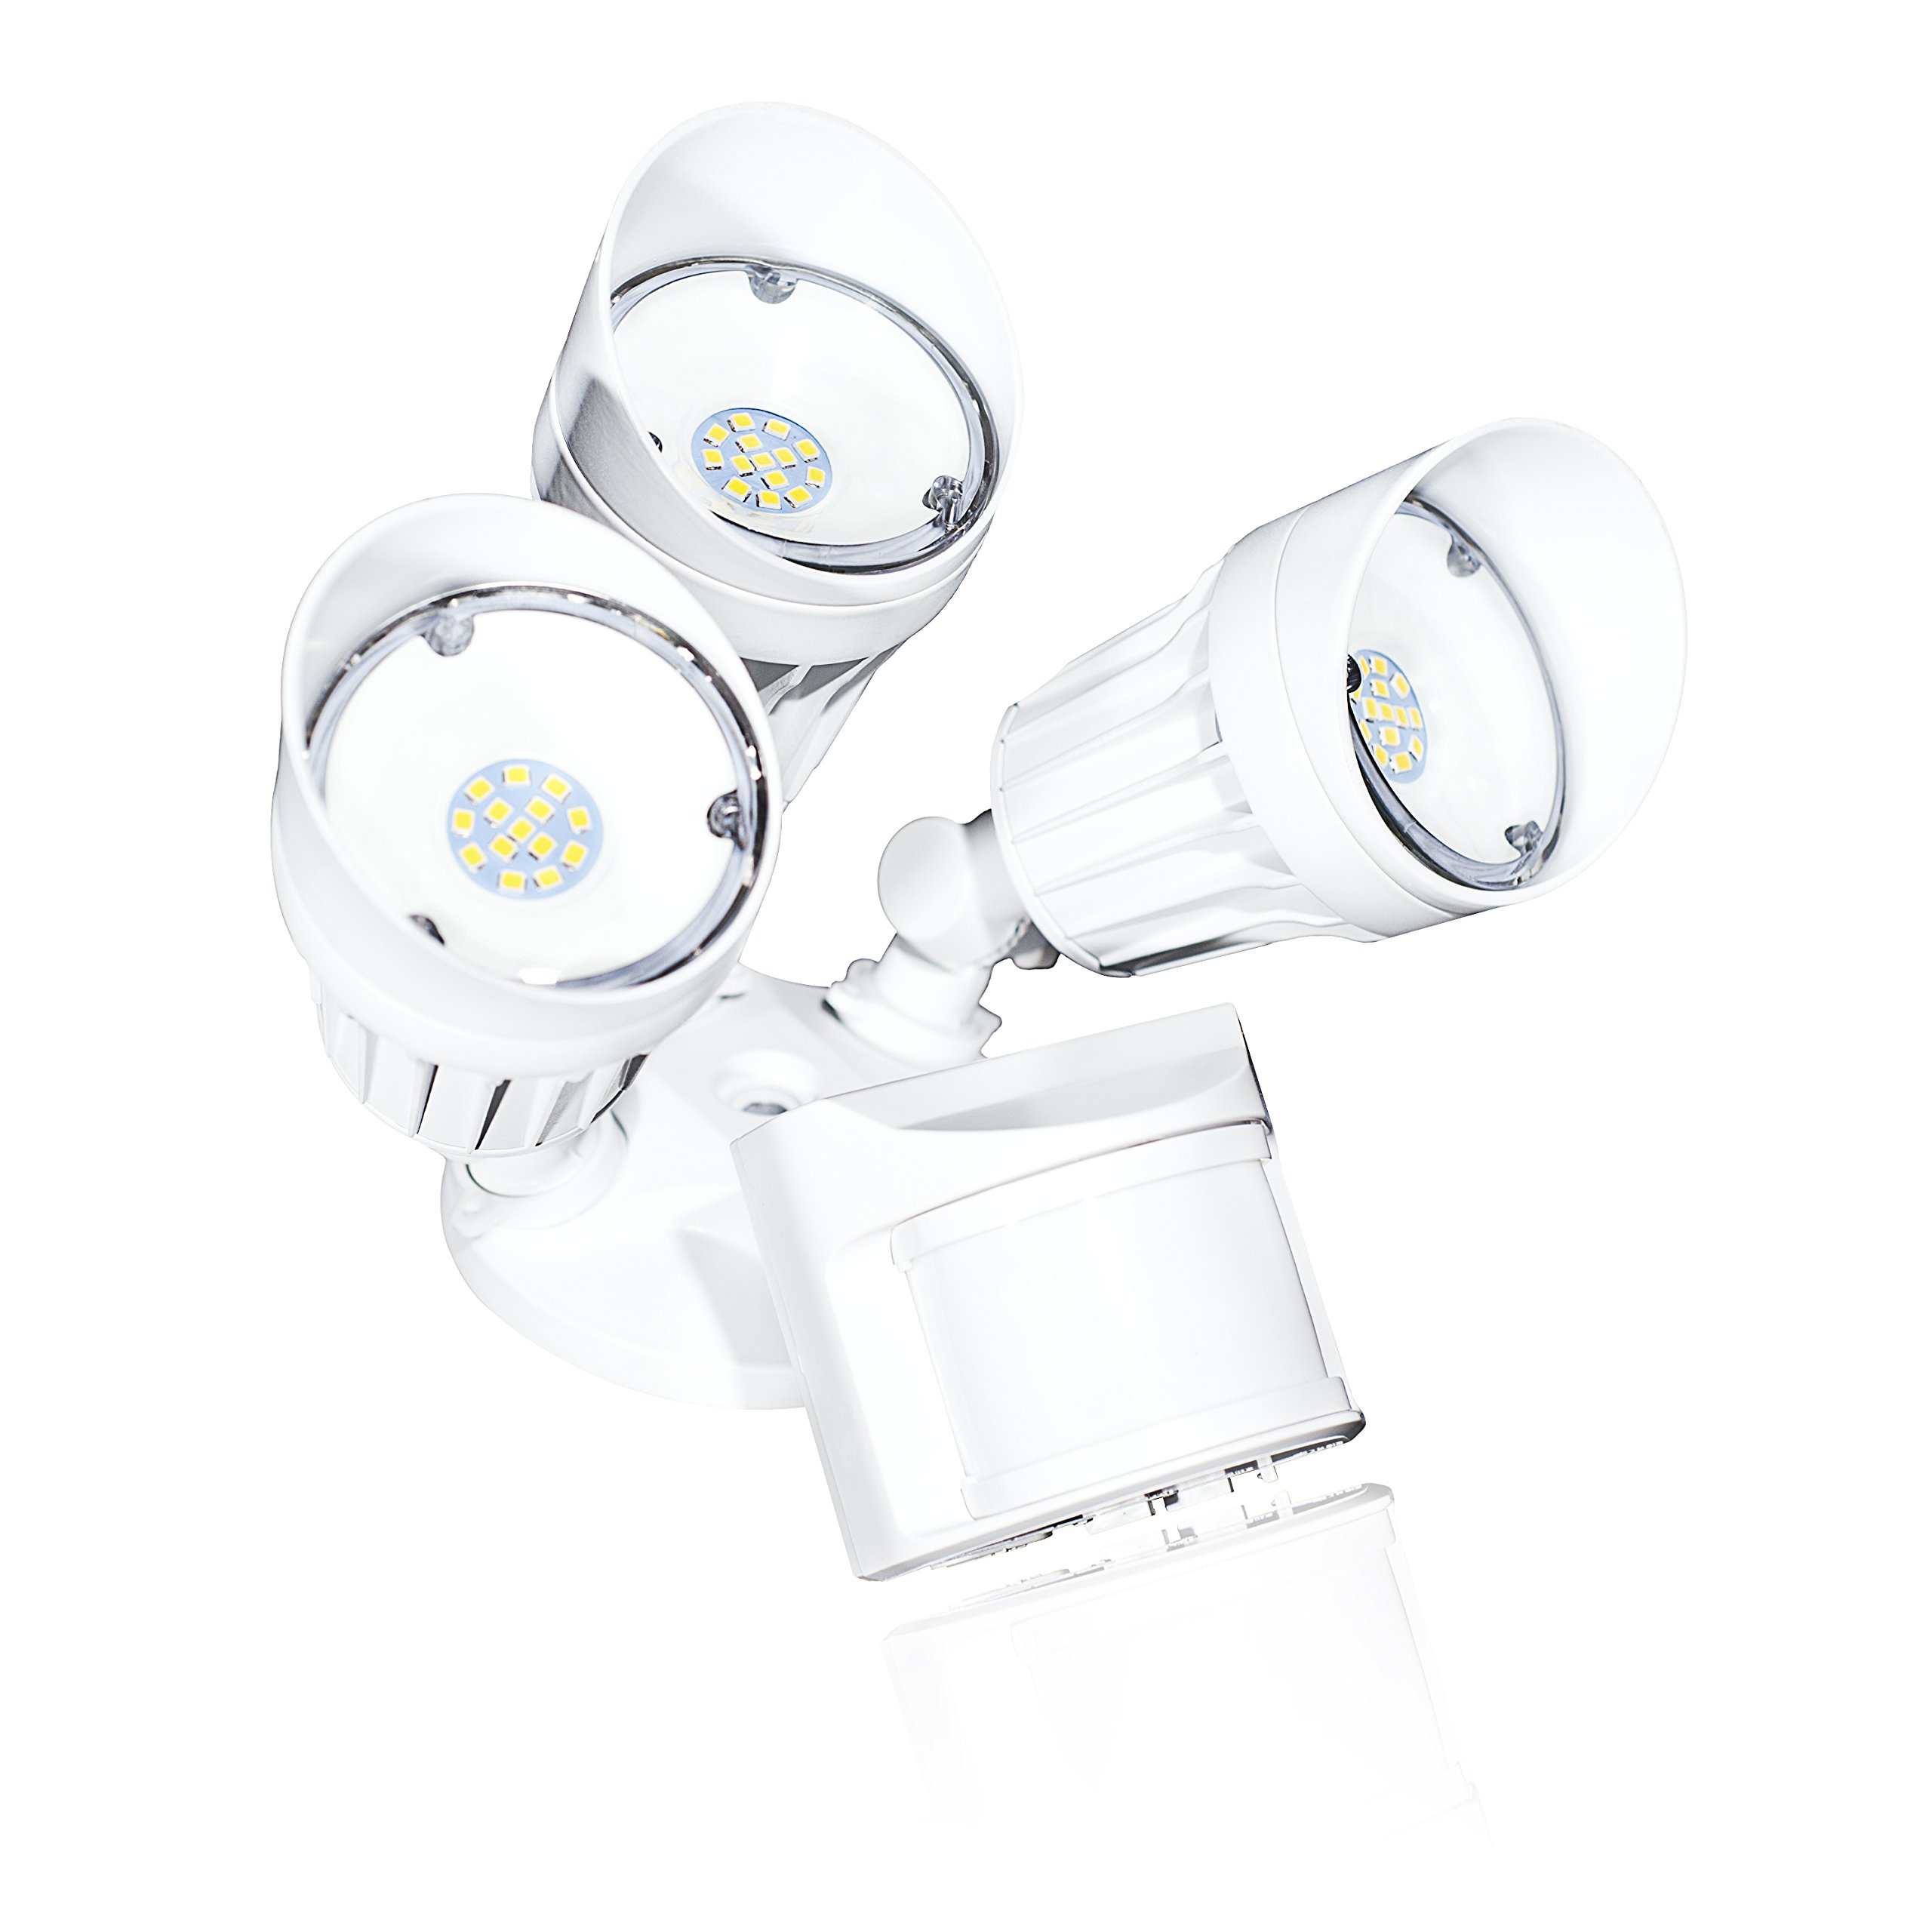 Bulb Daddy 30 Watt Three Head LED Security Light, Dusk to Dawn and Motion Sensor Combination, Adjustable Heads, Residential and Commercial Applications, 5000K- Daylight, ETL, DLC, Weatherproof IP65